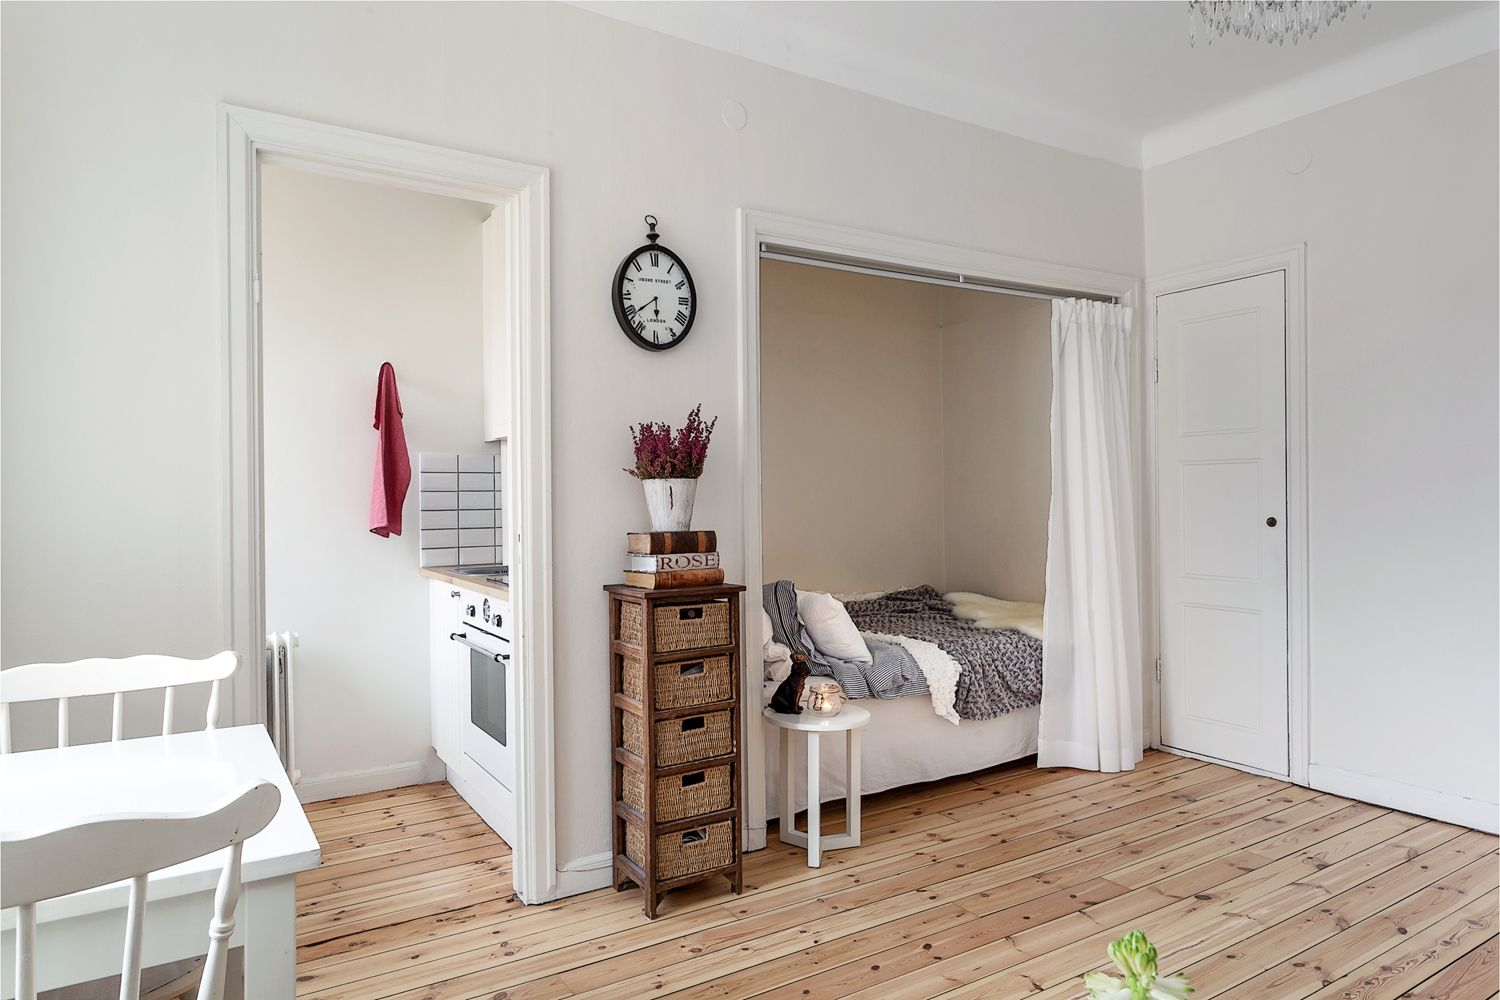 Another view of the bed in the closet.  Alla bilder - Creutzgatan 2, 4 tr